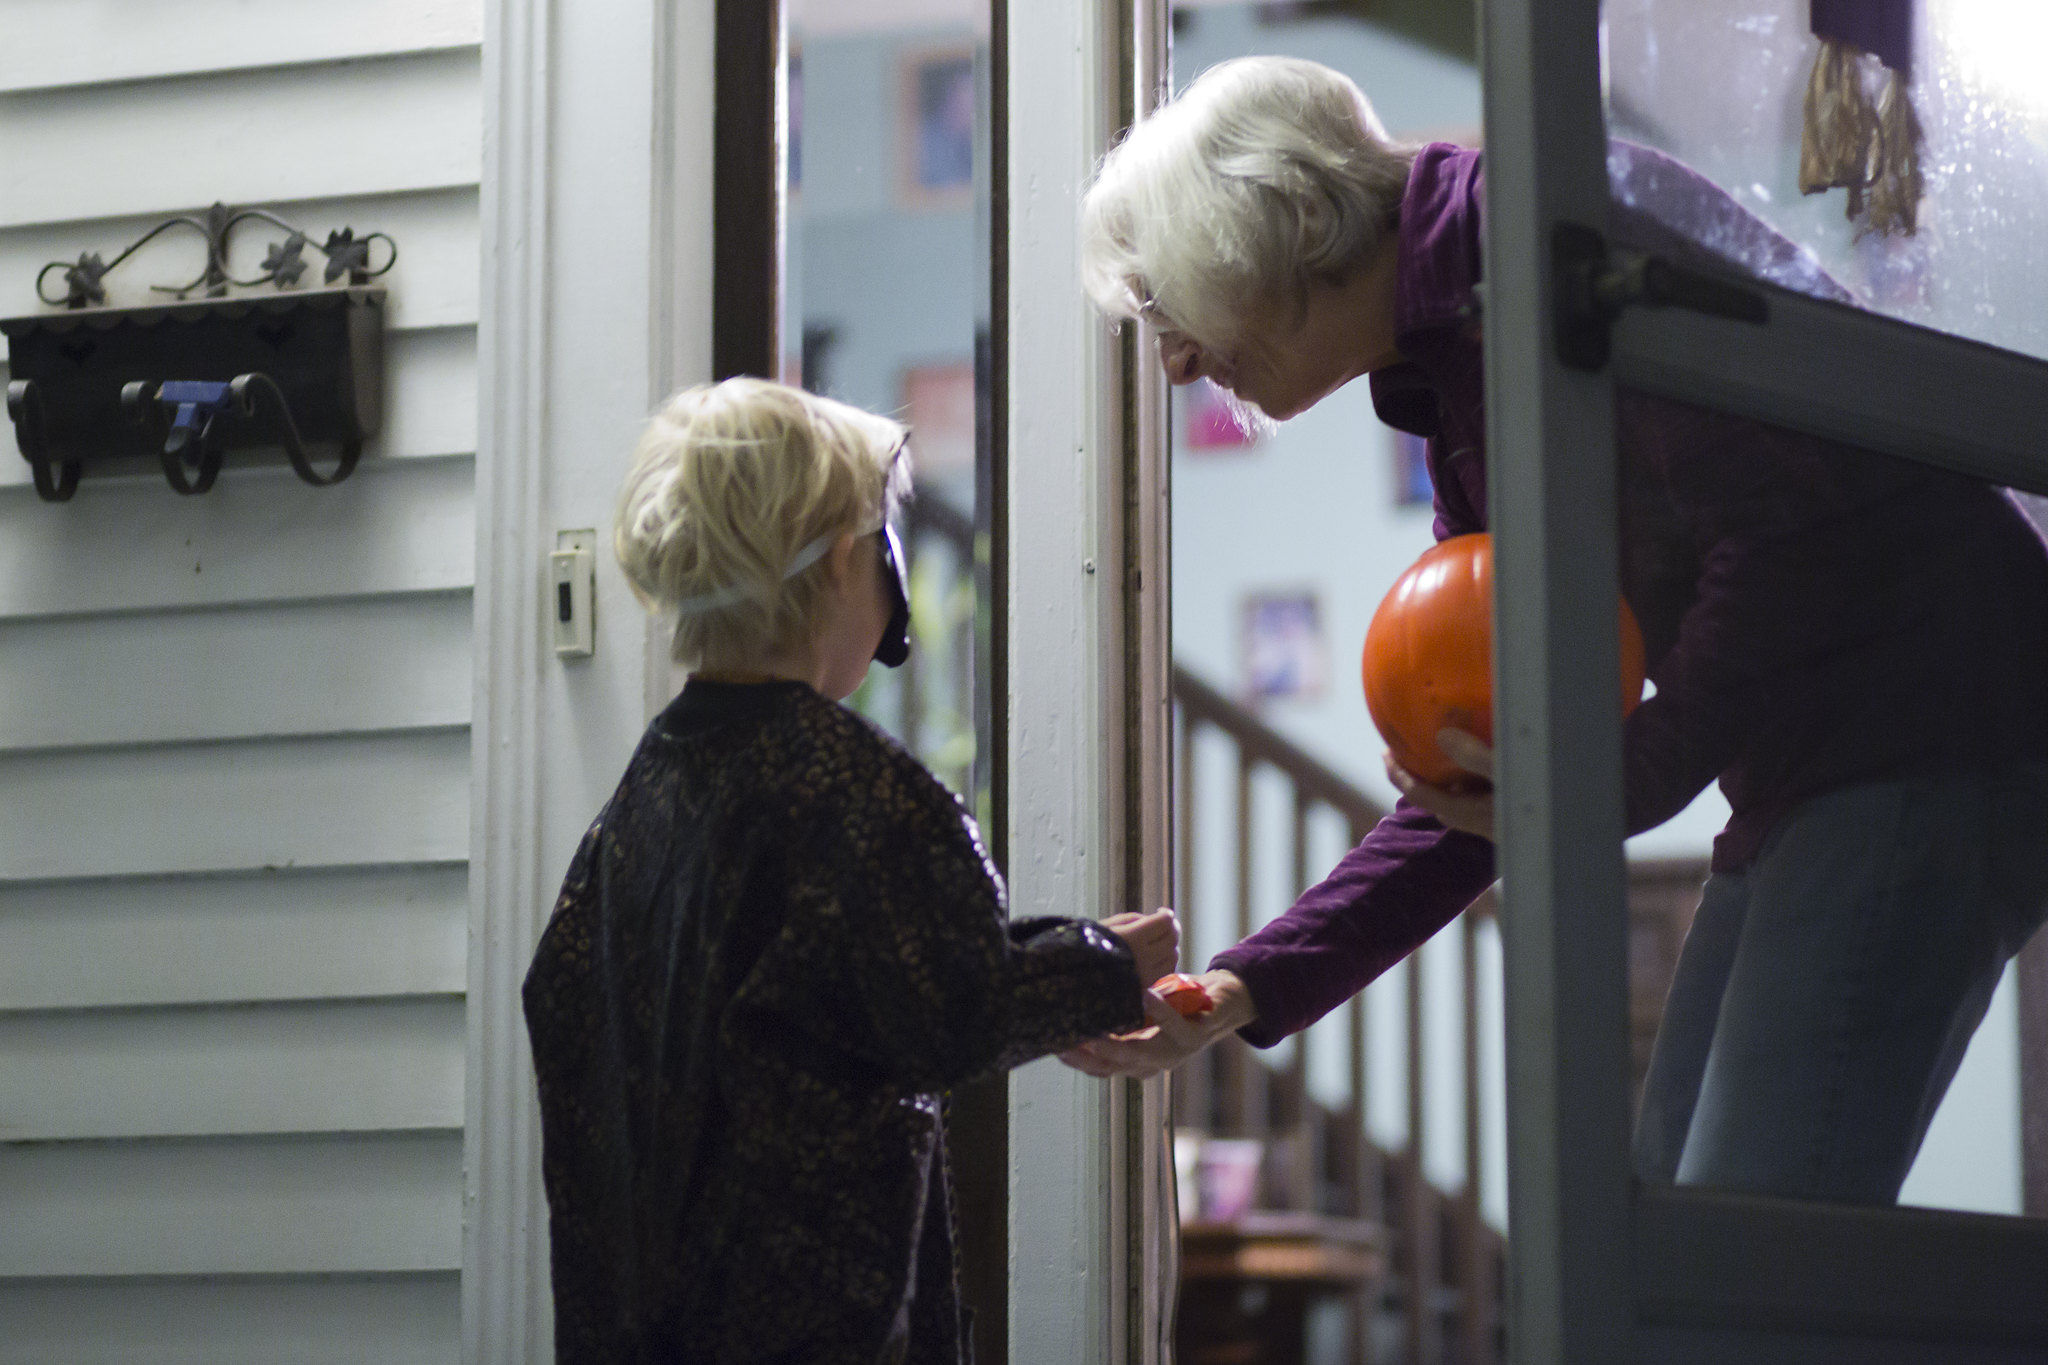 Trick-or-treating on Halloween. (Credit: Keri Logan/ Flickr)